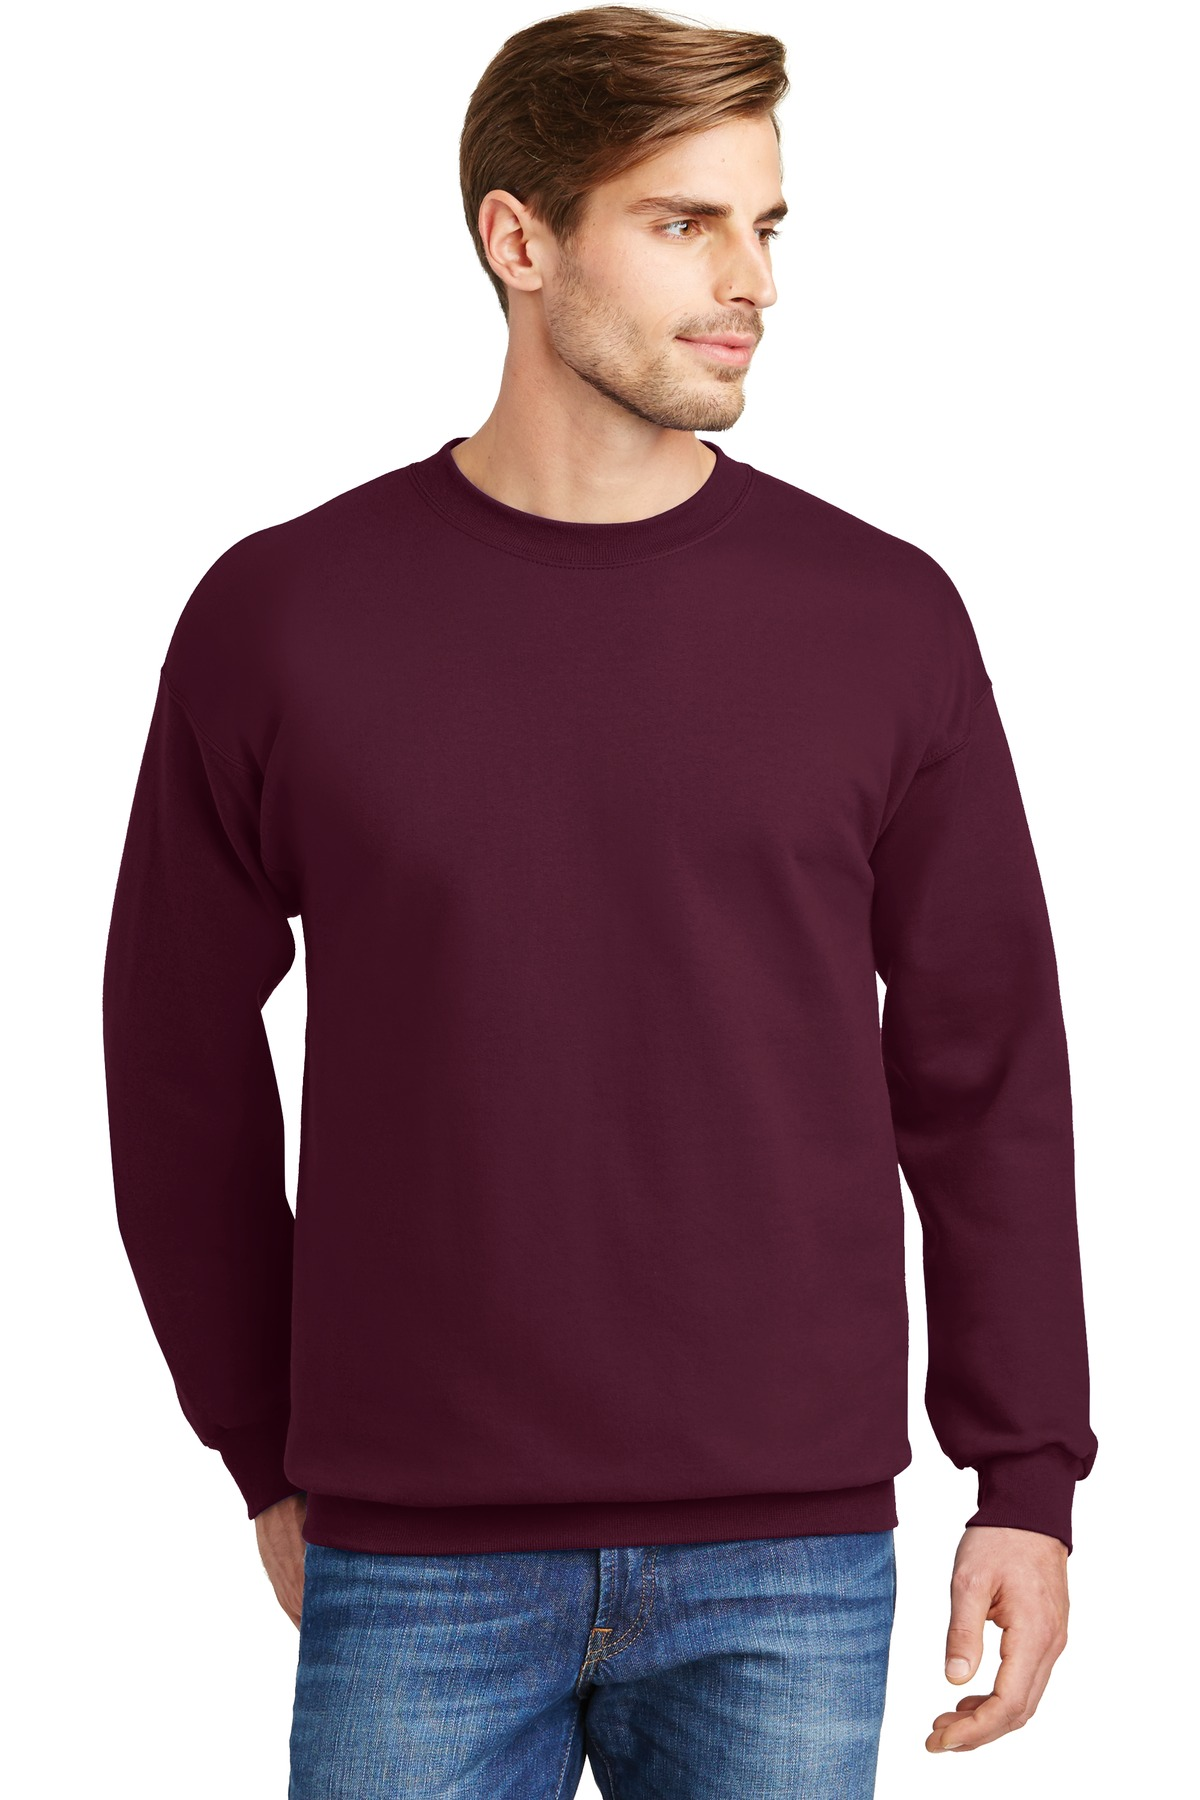 Hanes ®  Ultimate Cotton ®  - Crewneck Sweatshirt.  F260 - Maroon